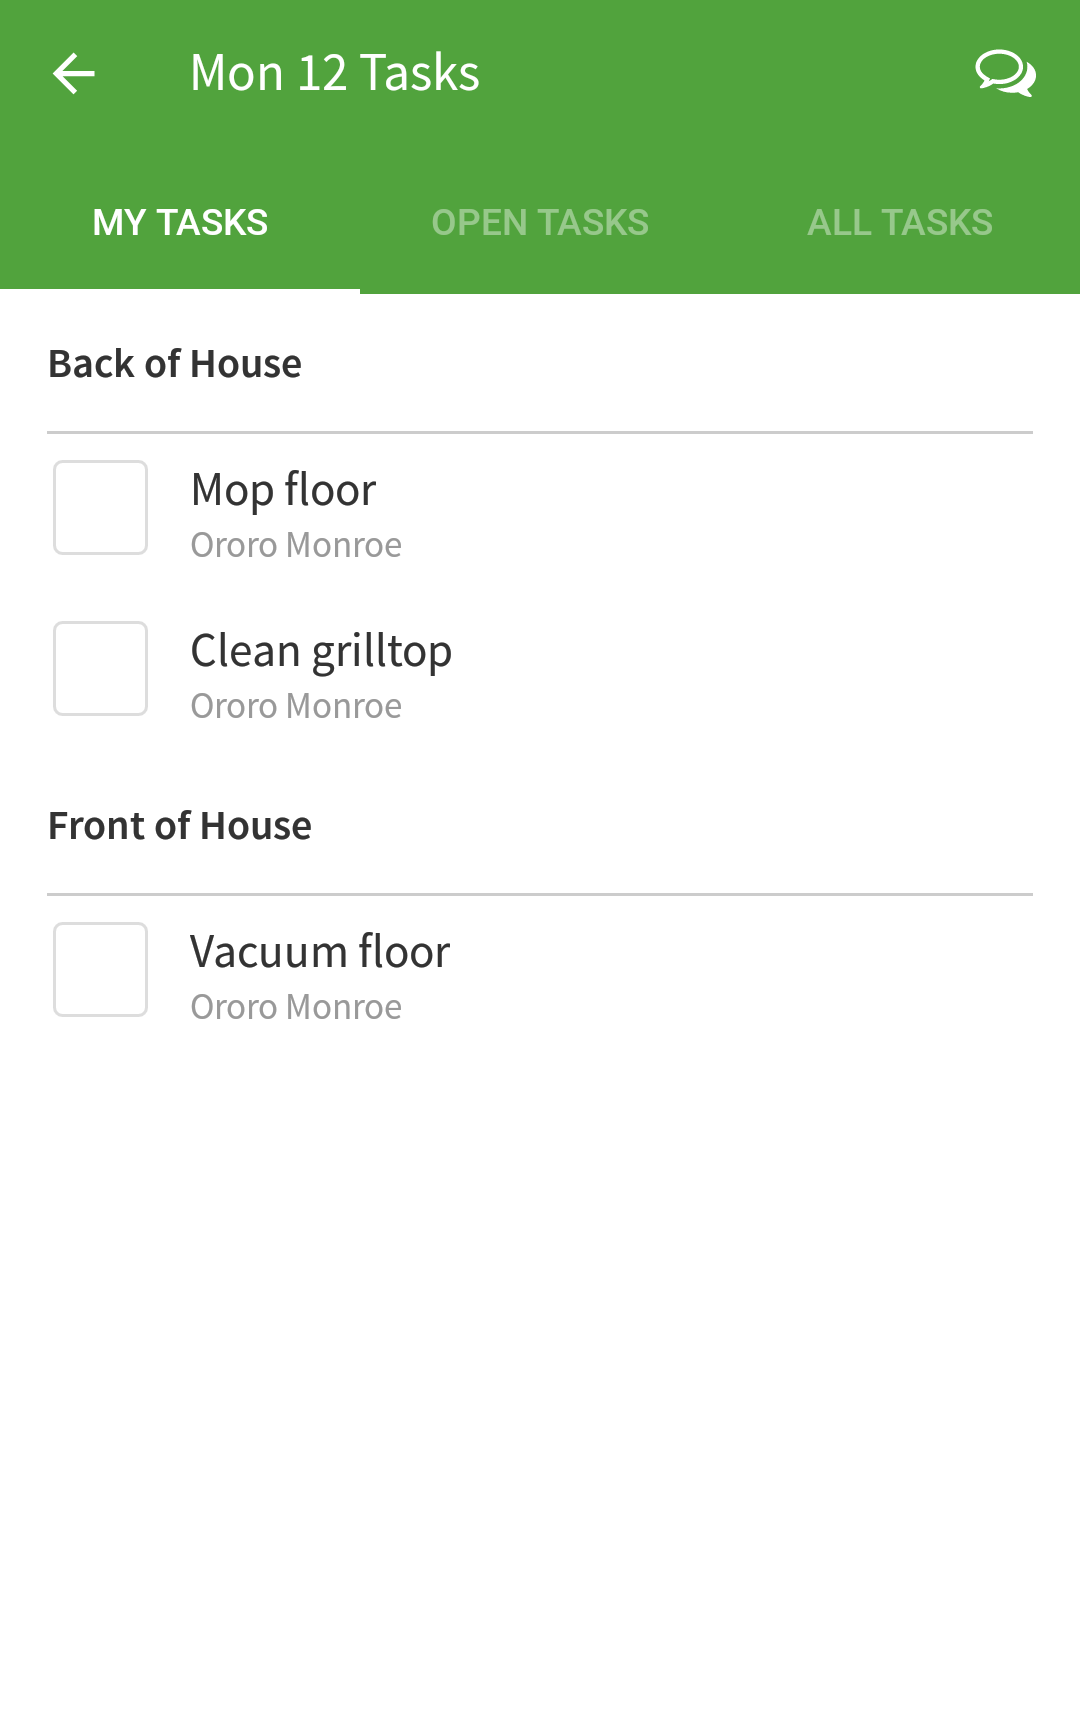 My Tasks tab